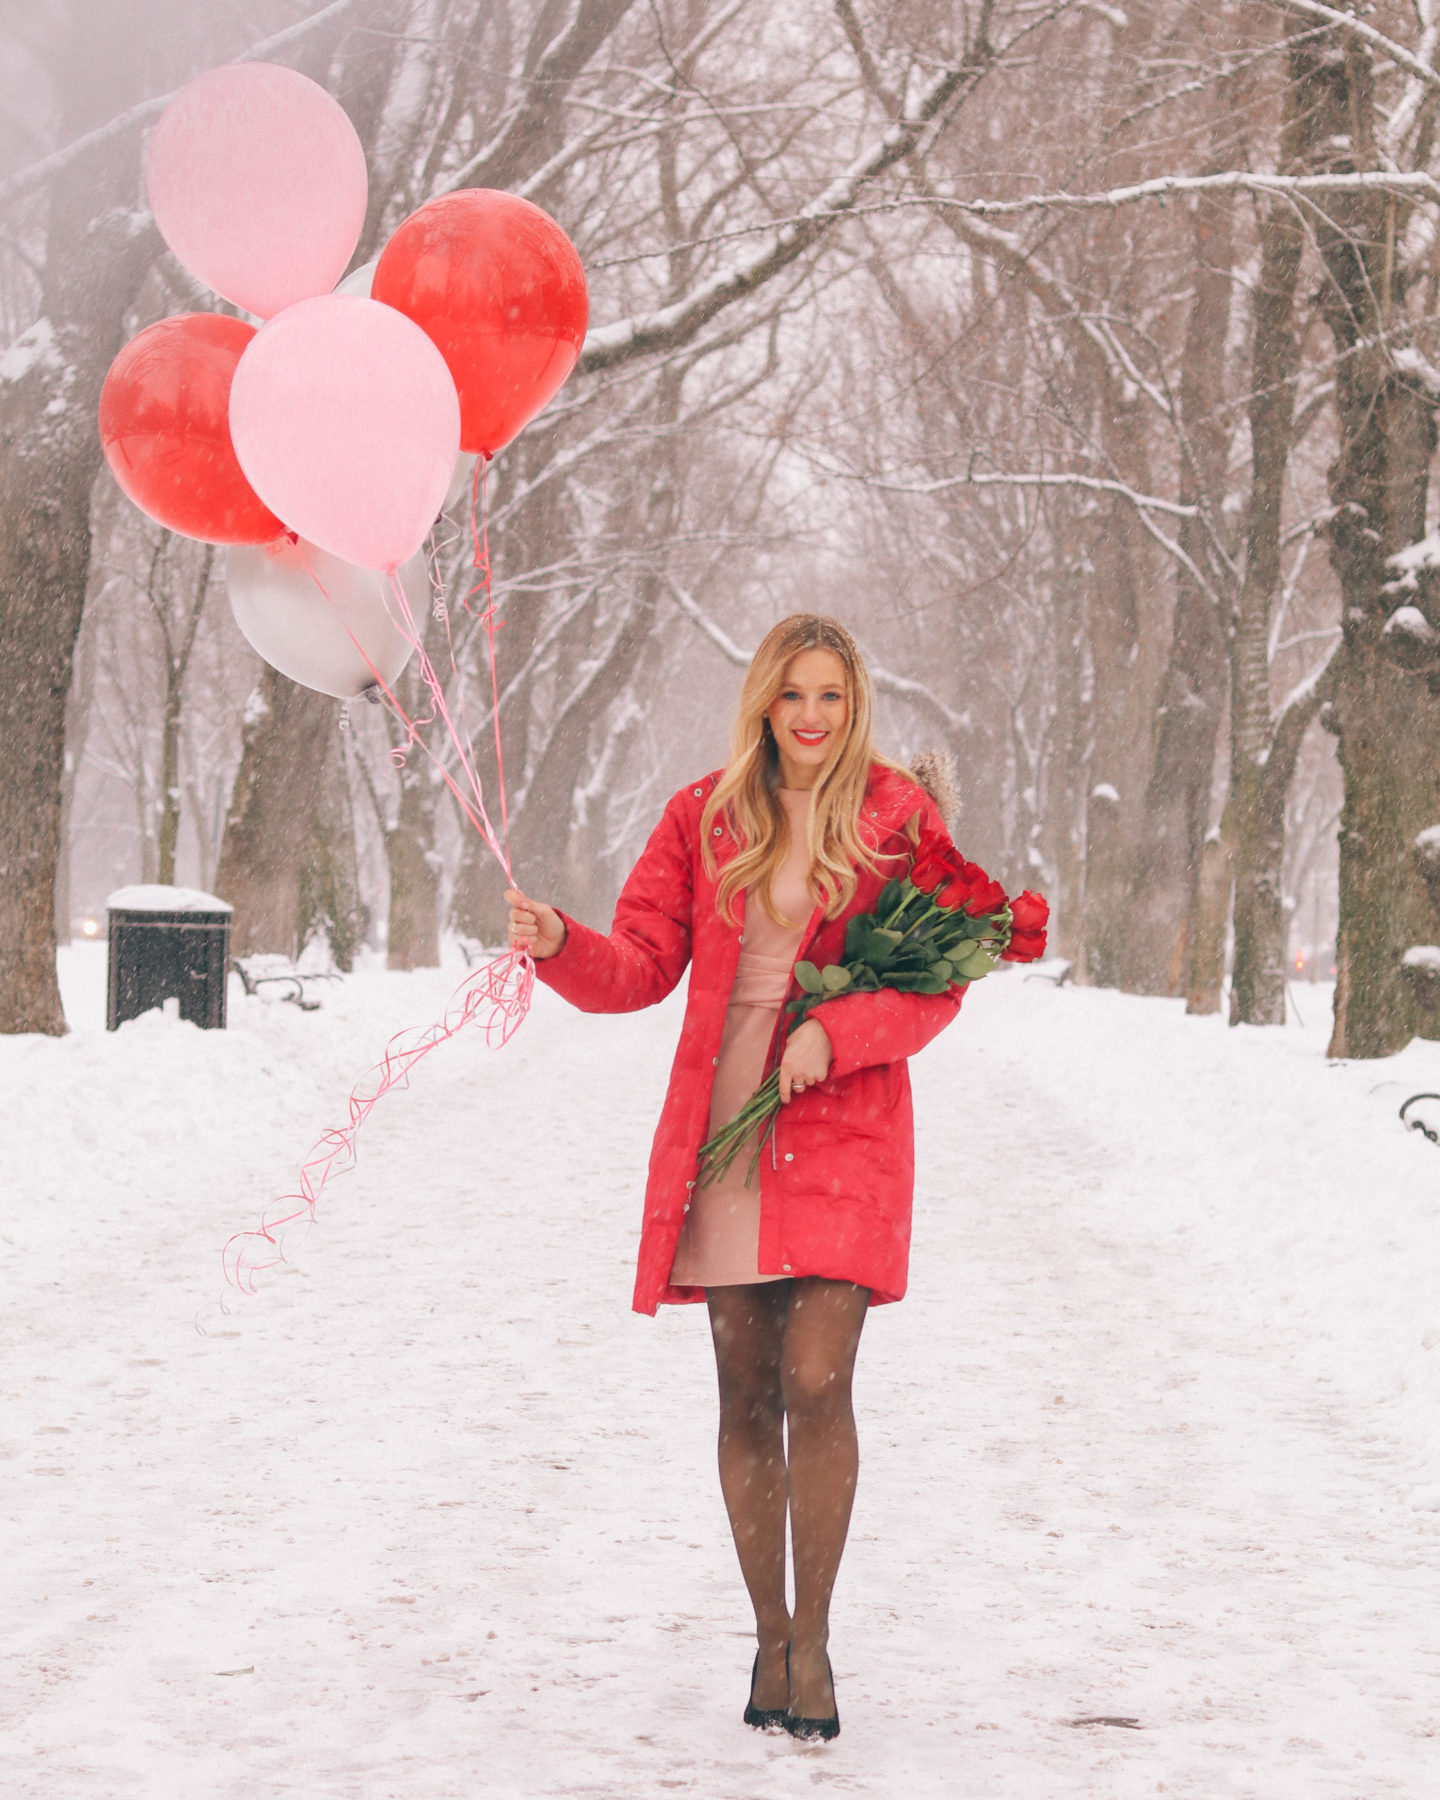 14 valentine's day date ideas for that someone special and your bestie